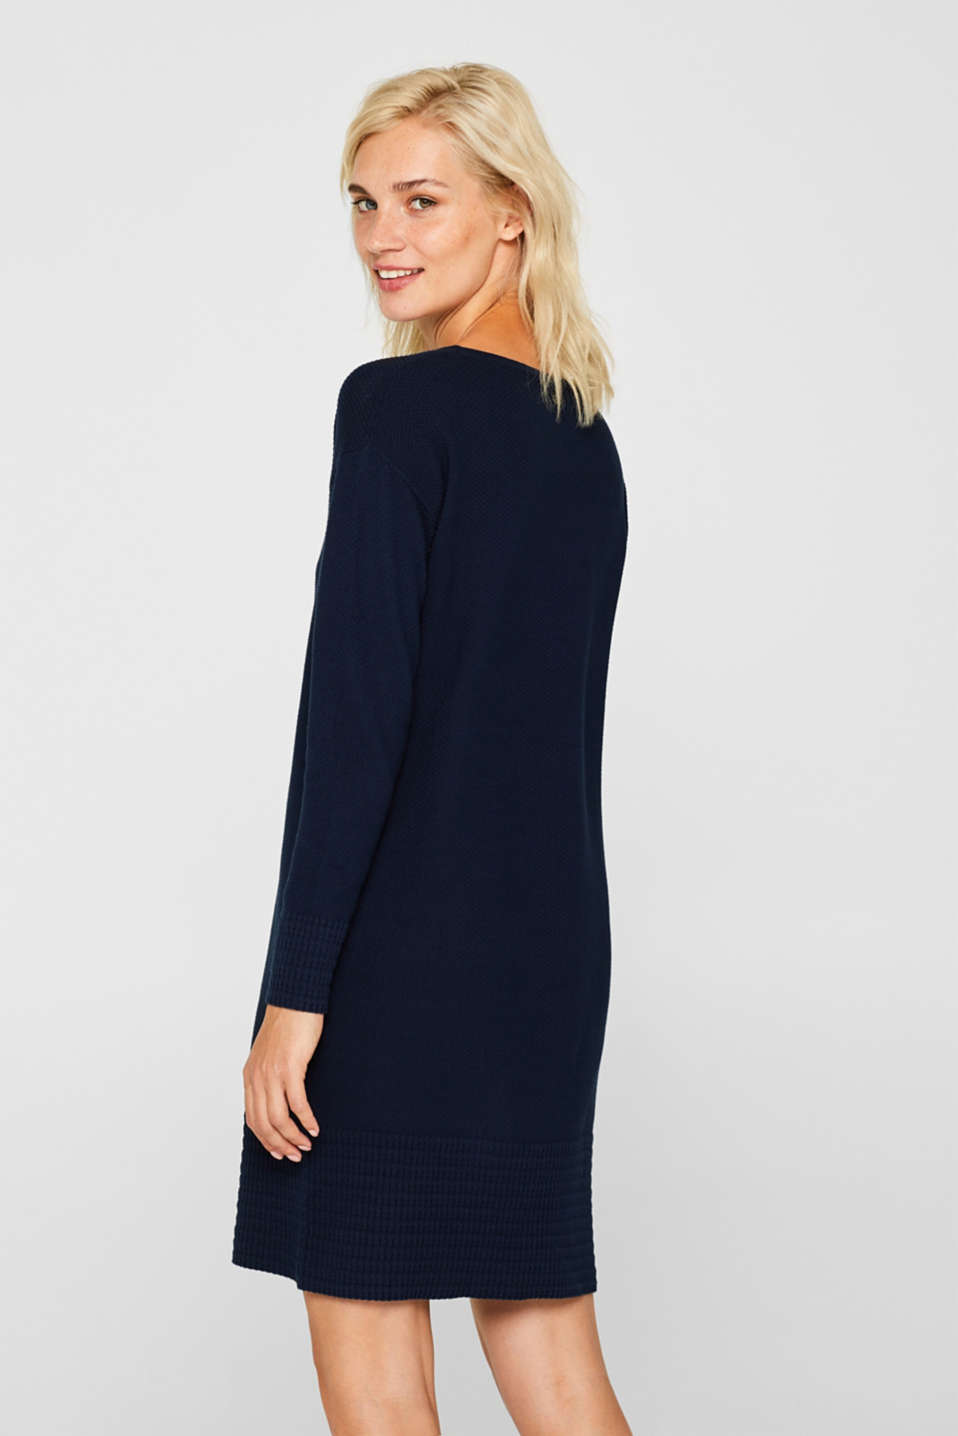 Textured knitted dress with organic cotton, NAVY 2, detail image number 1